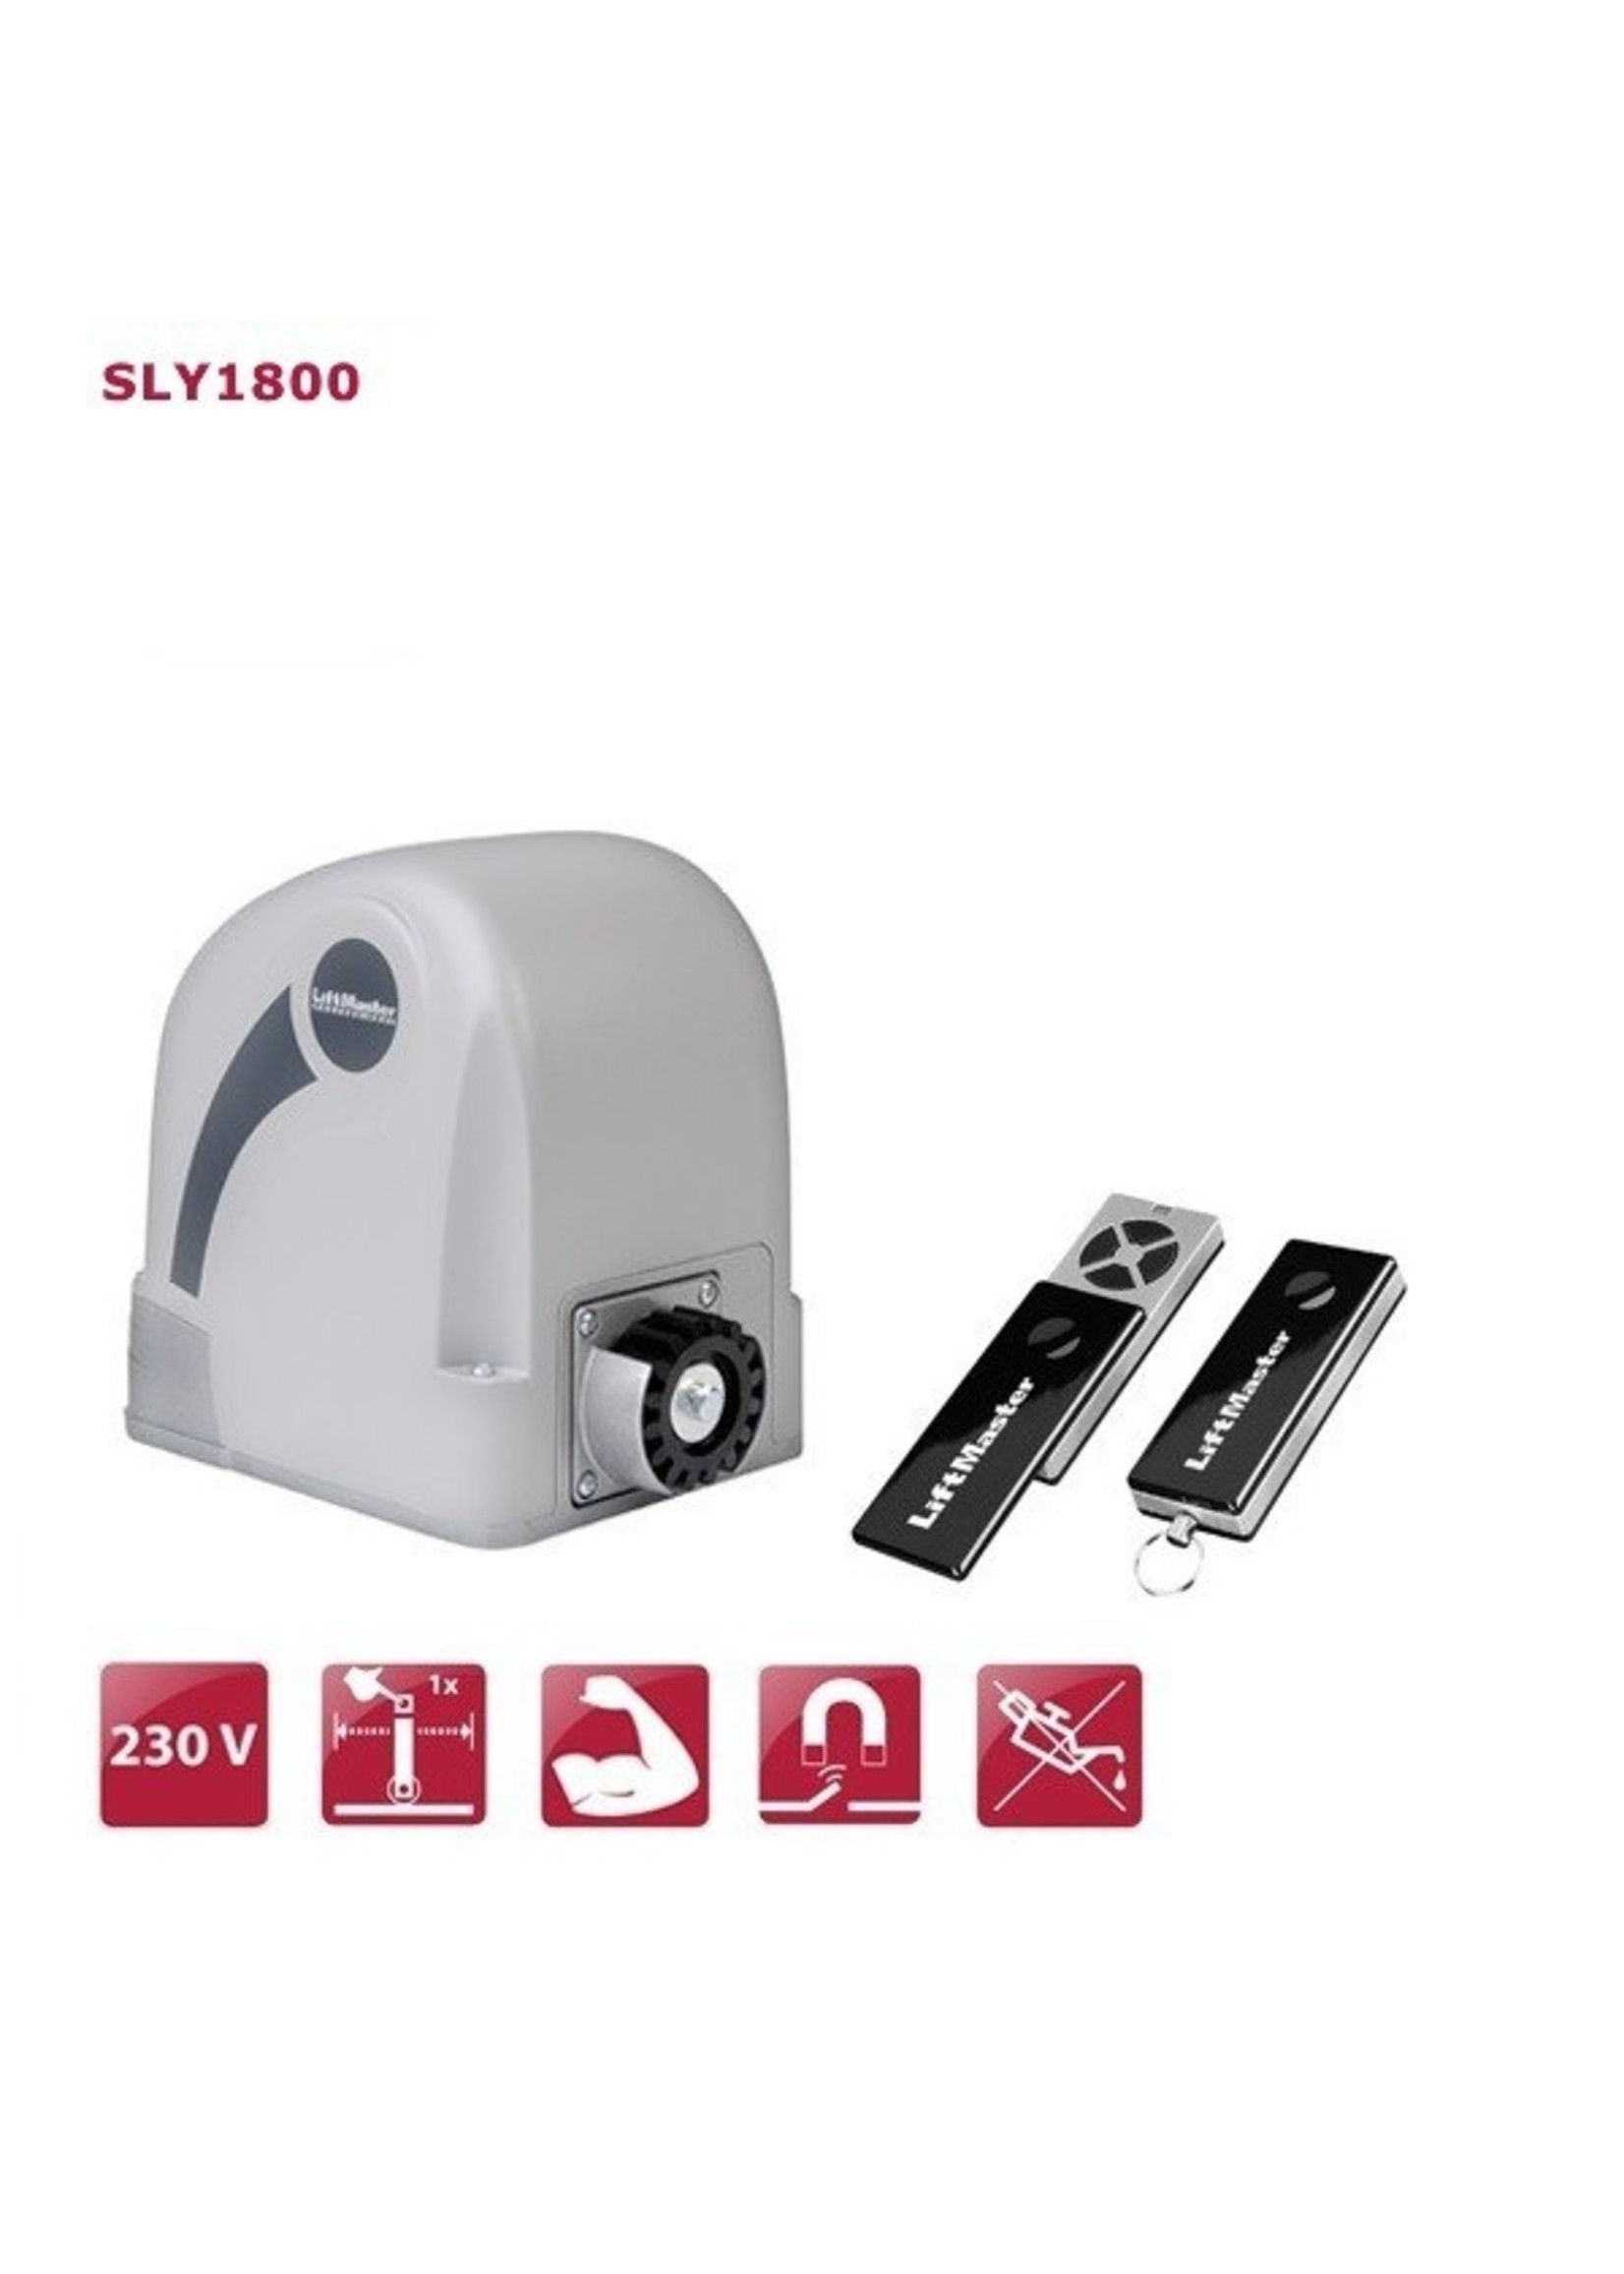 Liftmaster SLY1800K 230V Operateur pour portail coulissant